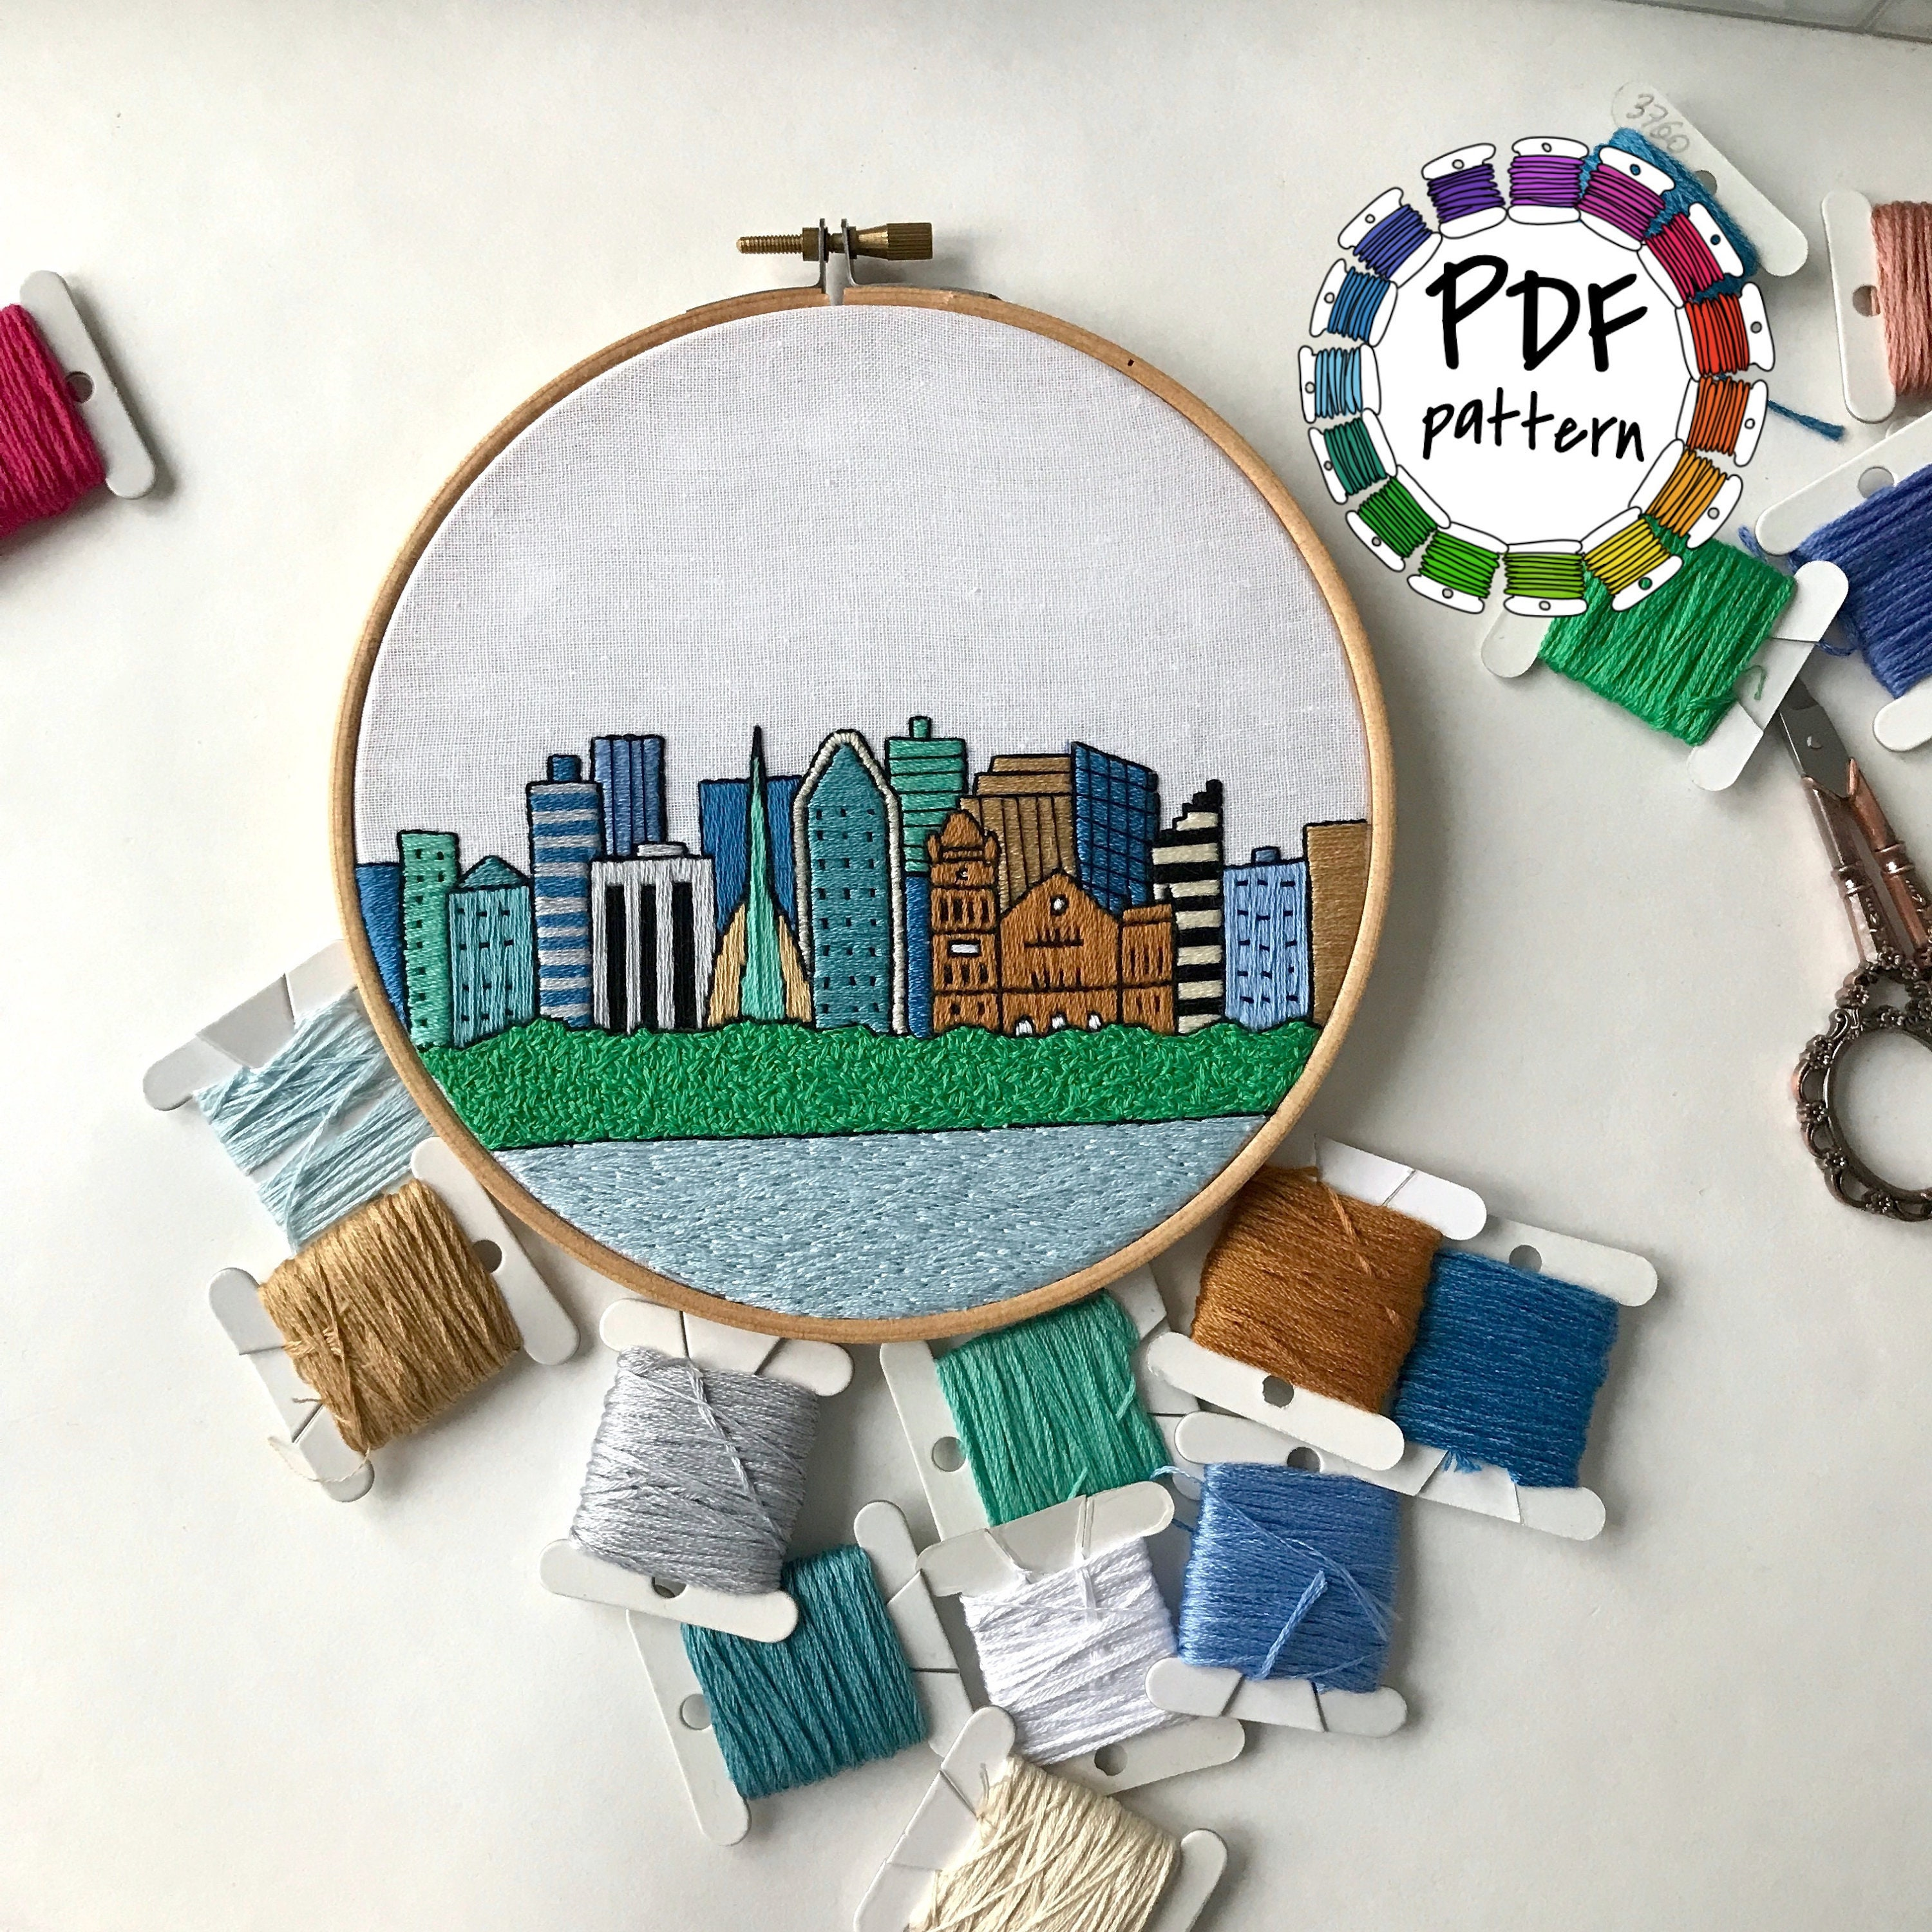 Perth, Australia. Hand Embroidery pattern PDF. Embroidery Hoop art. DIY.  Wall Decor, Housewarming Gift. Free Hand embroidery guide